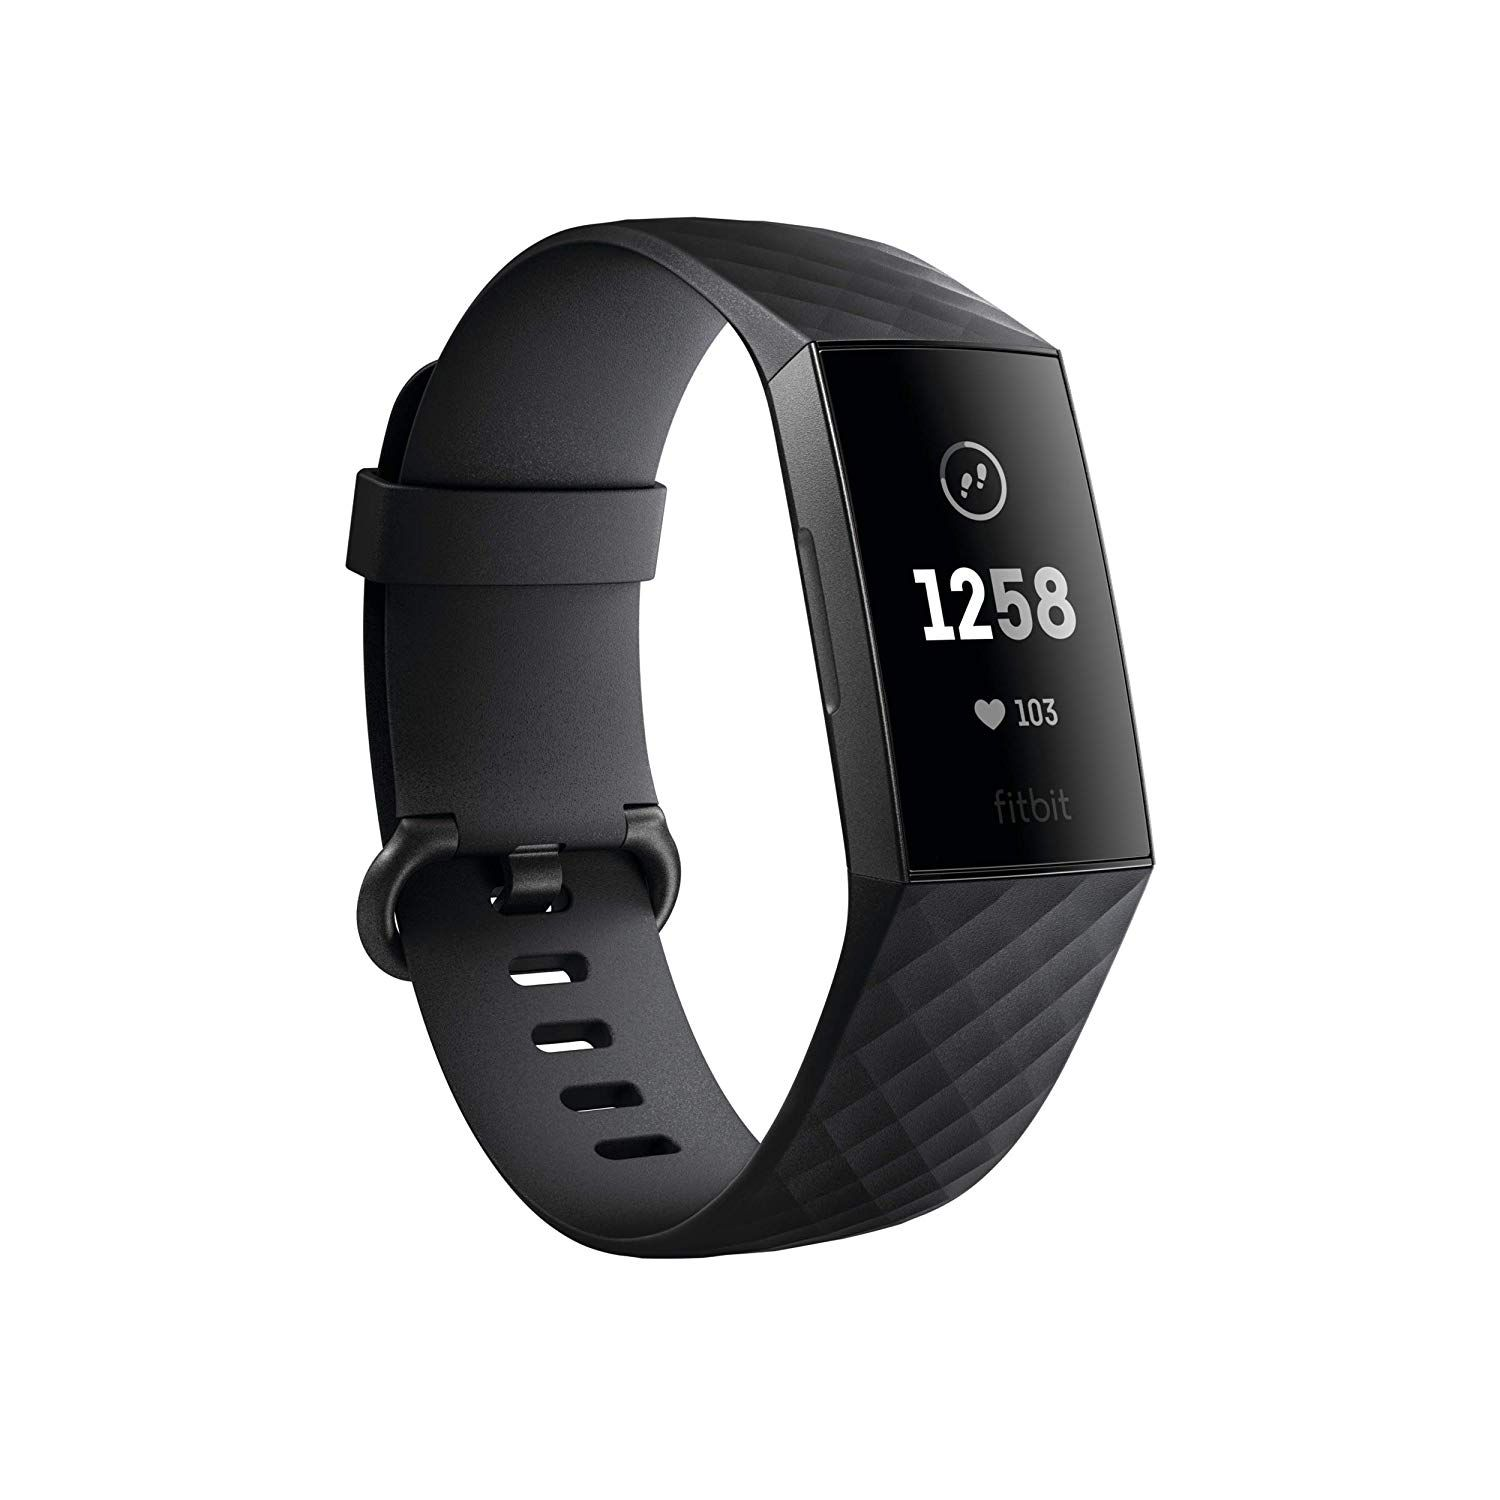 Best Overall Fitbit Charge 3 Fitness Activity Tracker